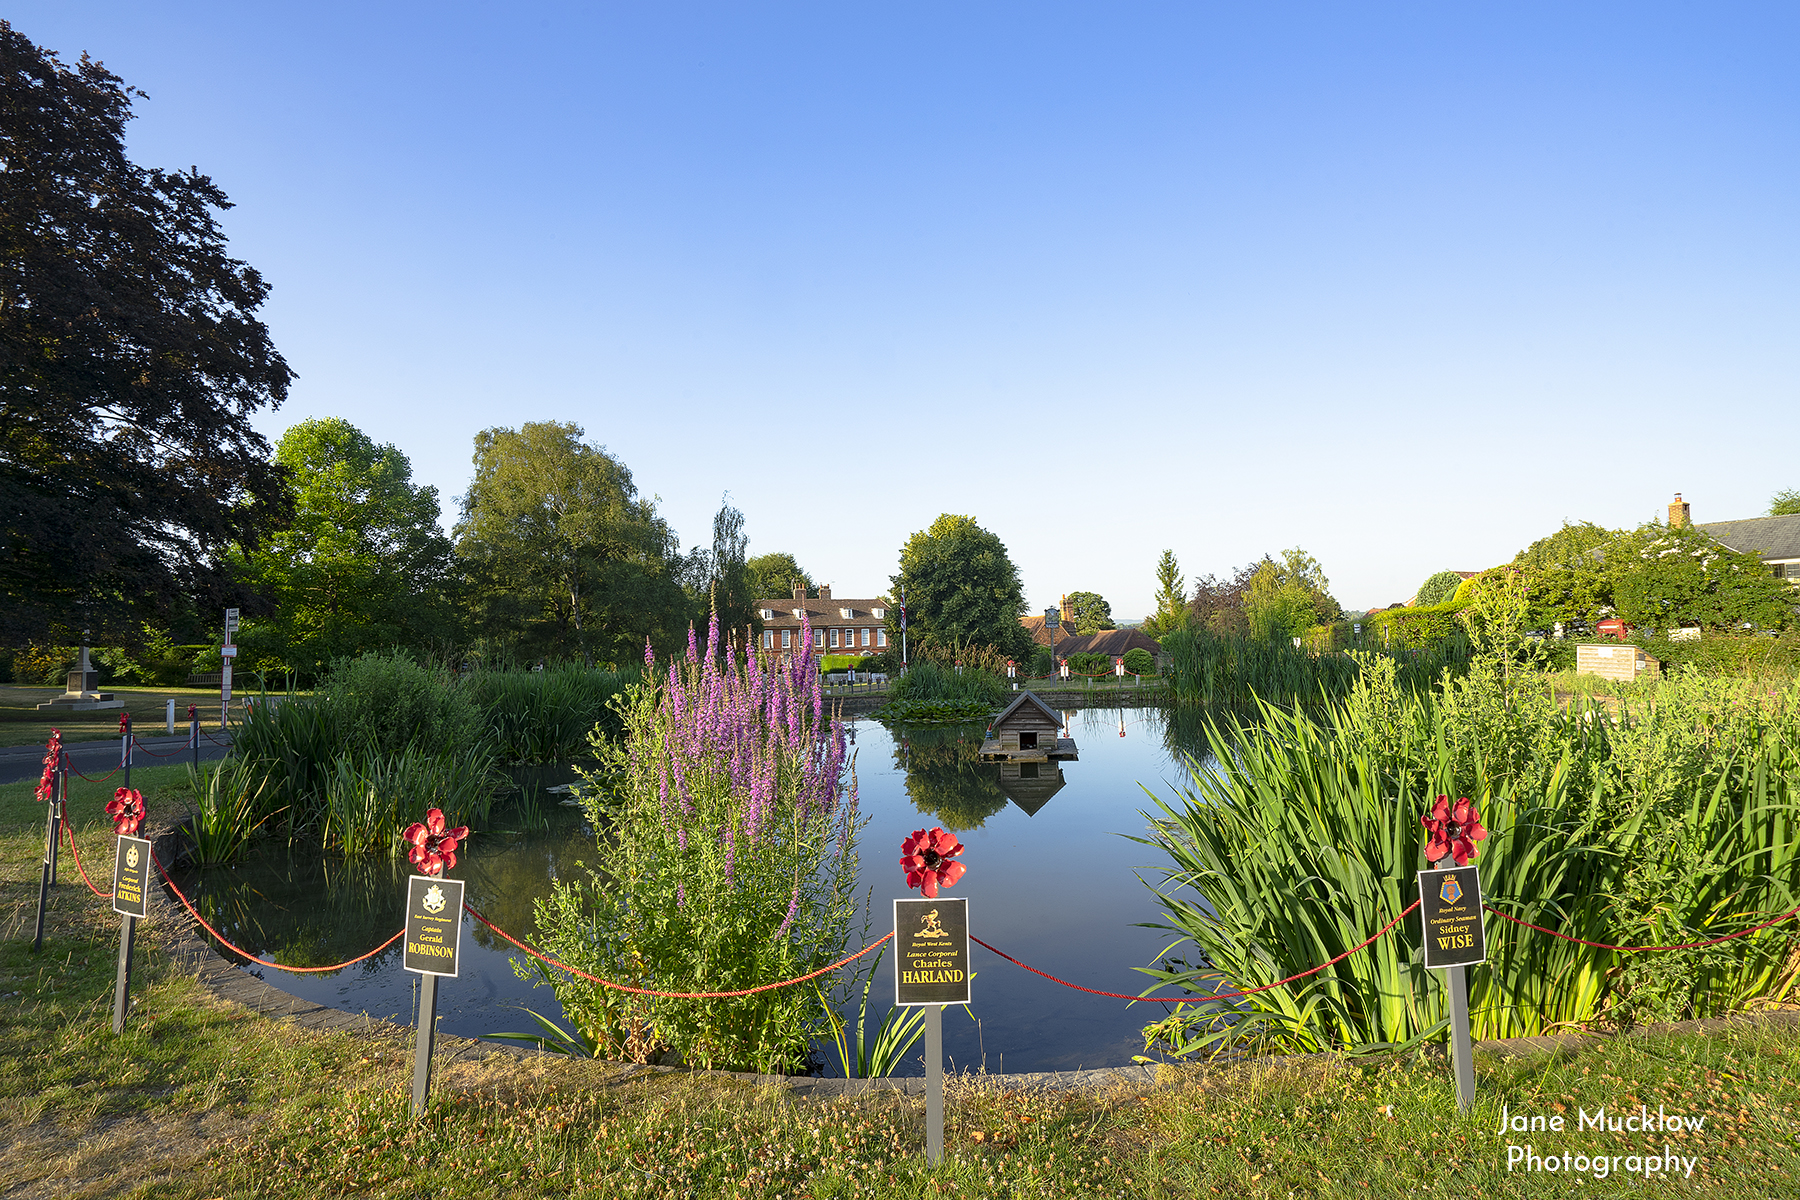 Photo of the Otford Pond on an early summer morning, by Jane Mucklow